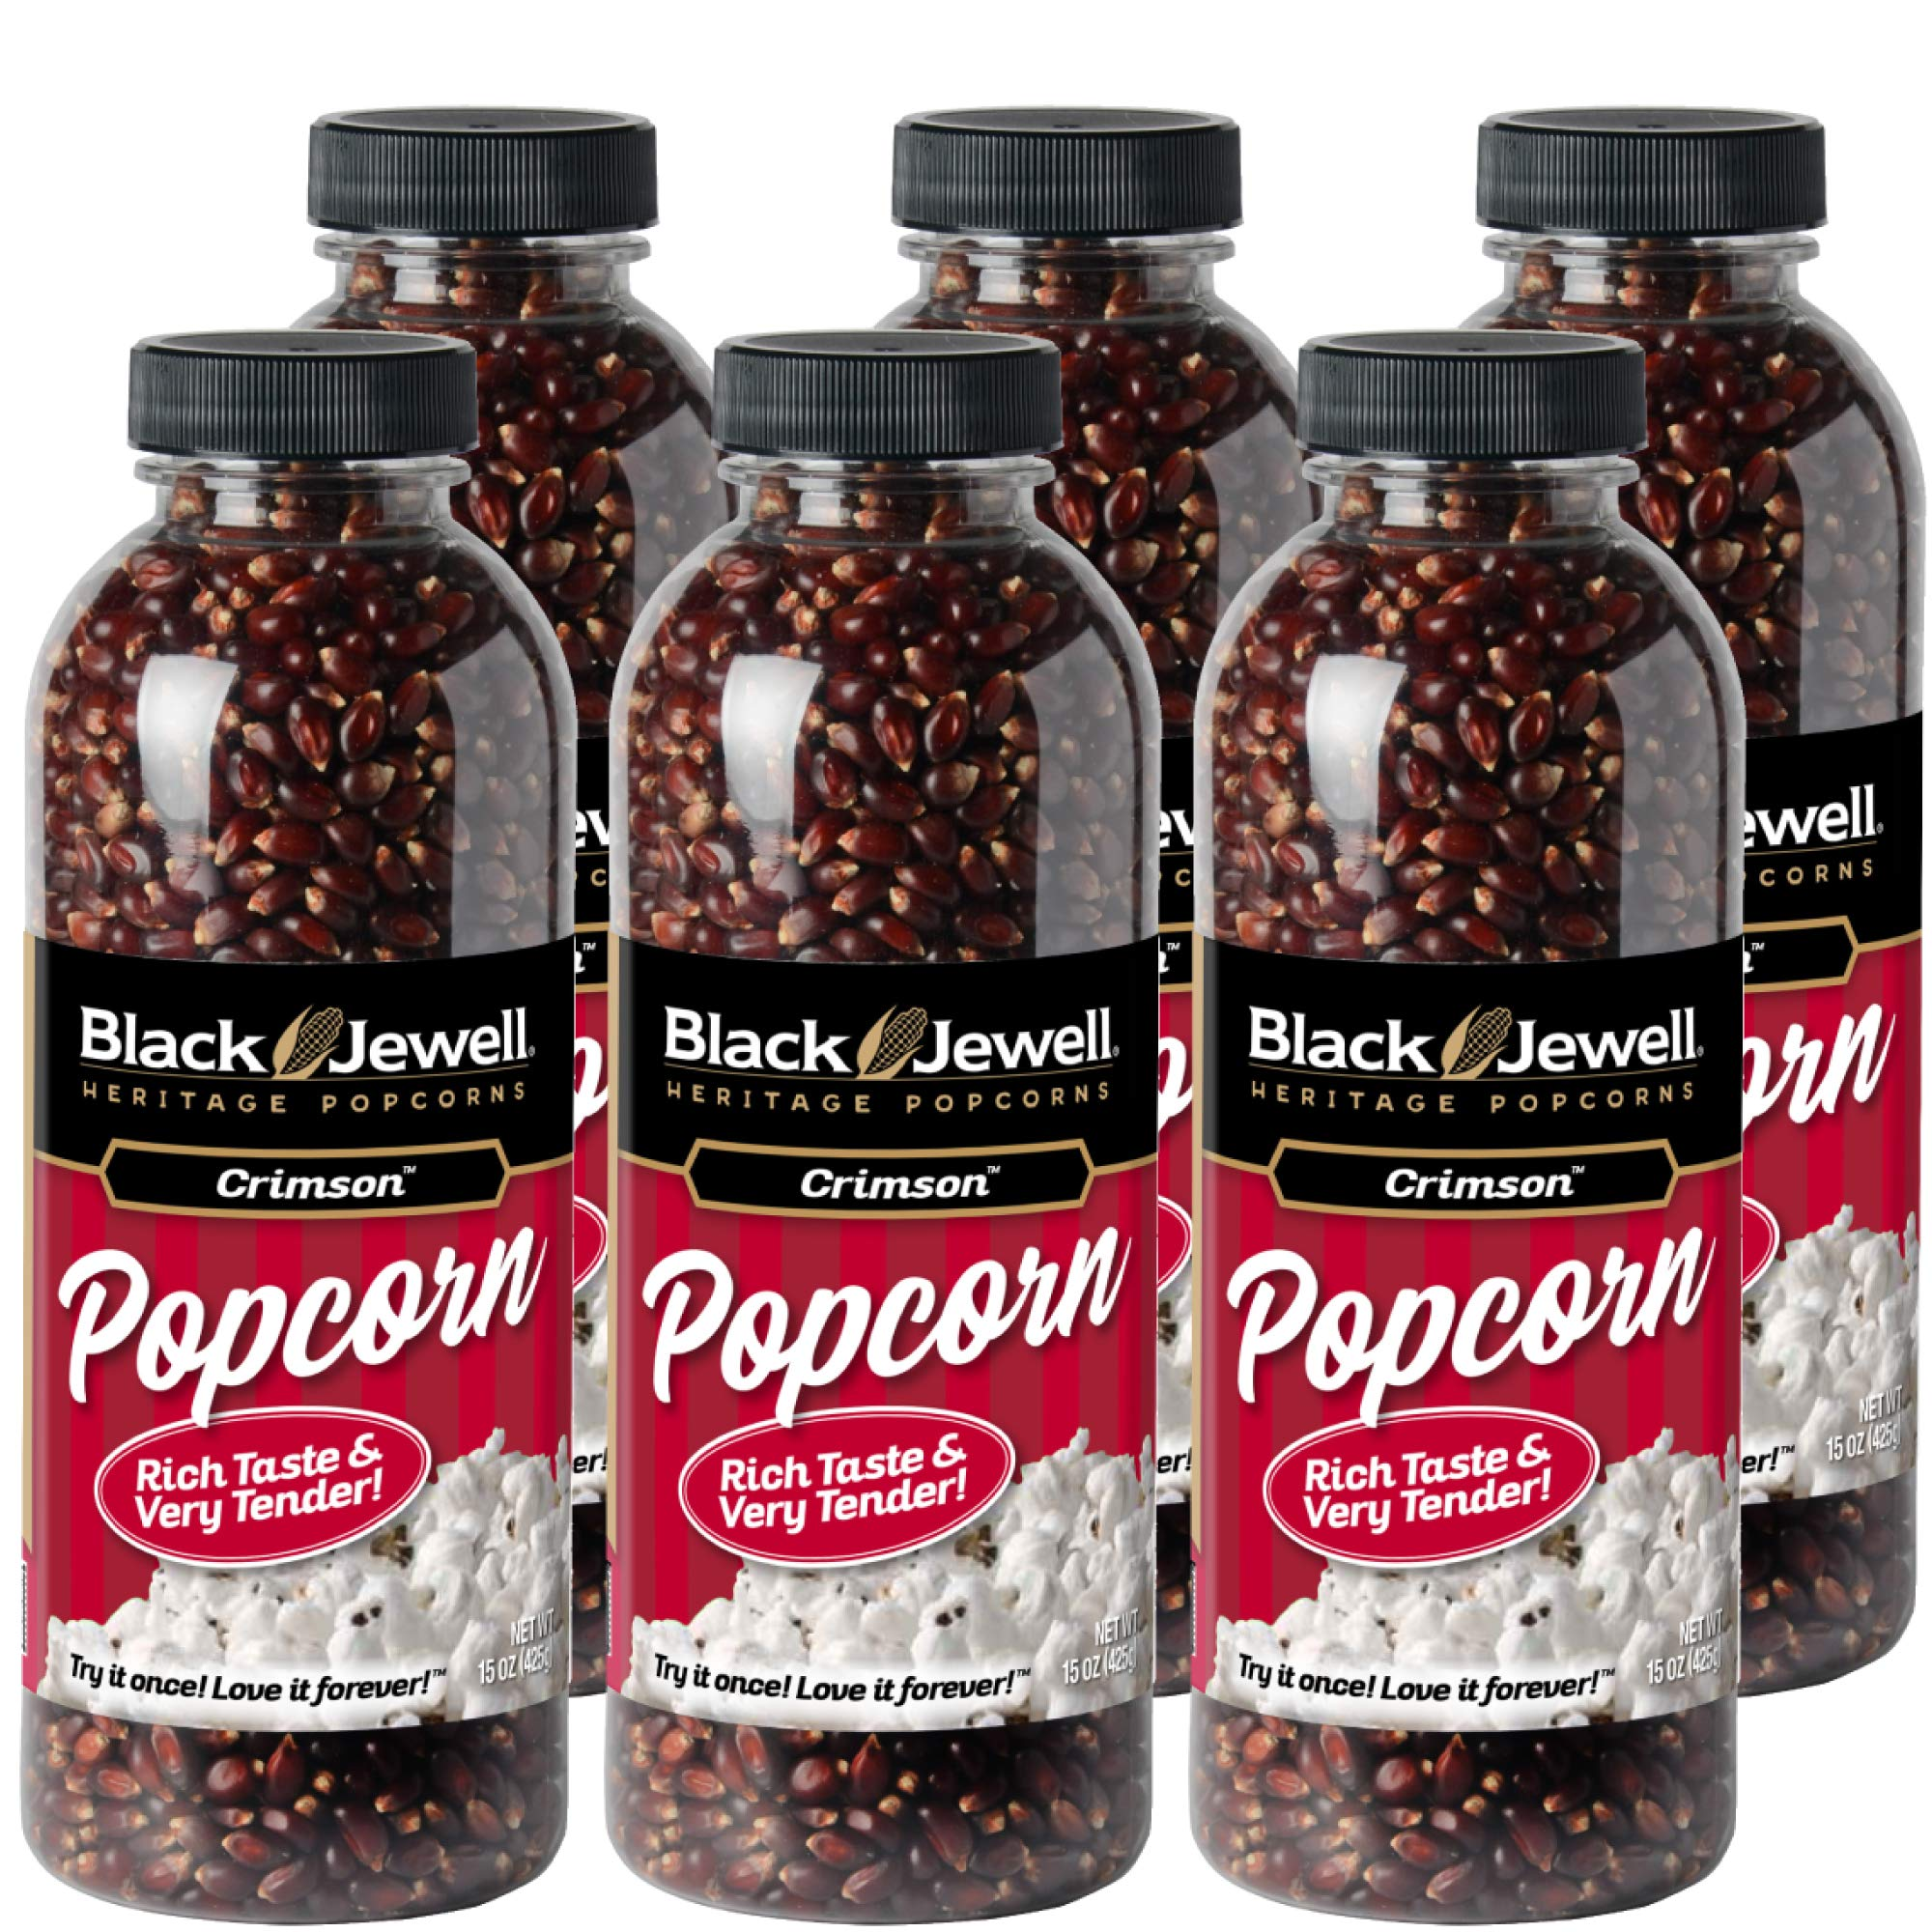 Black Jewell Crimson Hulless Popcorn Kernels 15 Ounces (Pack of 6) by Black Jewell